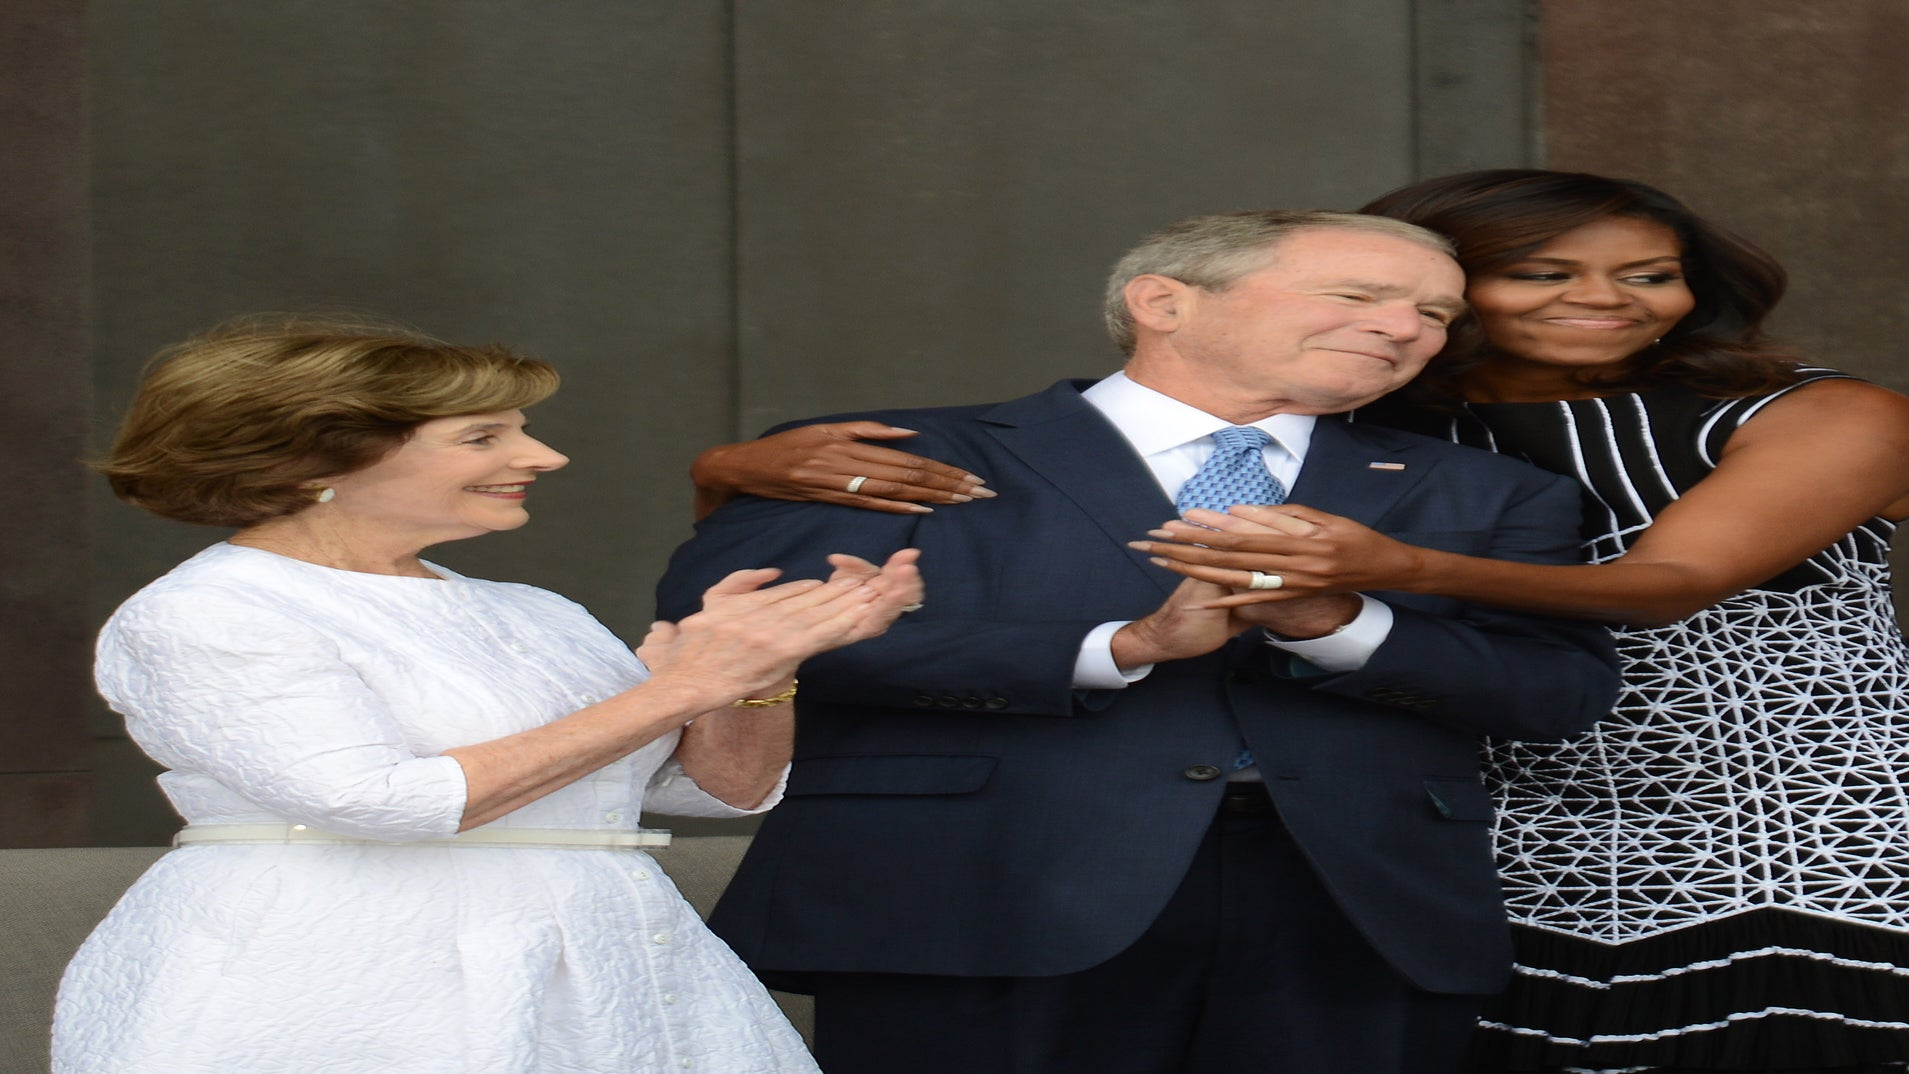 President Bush Gushes About Friendship With Michelle Obama